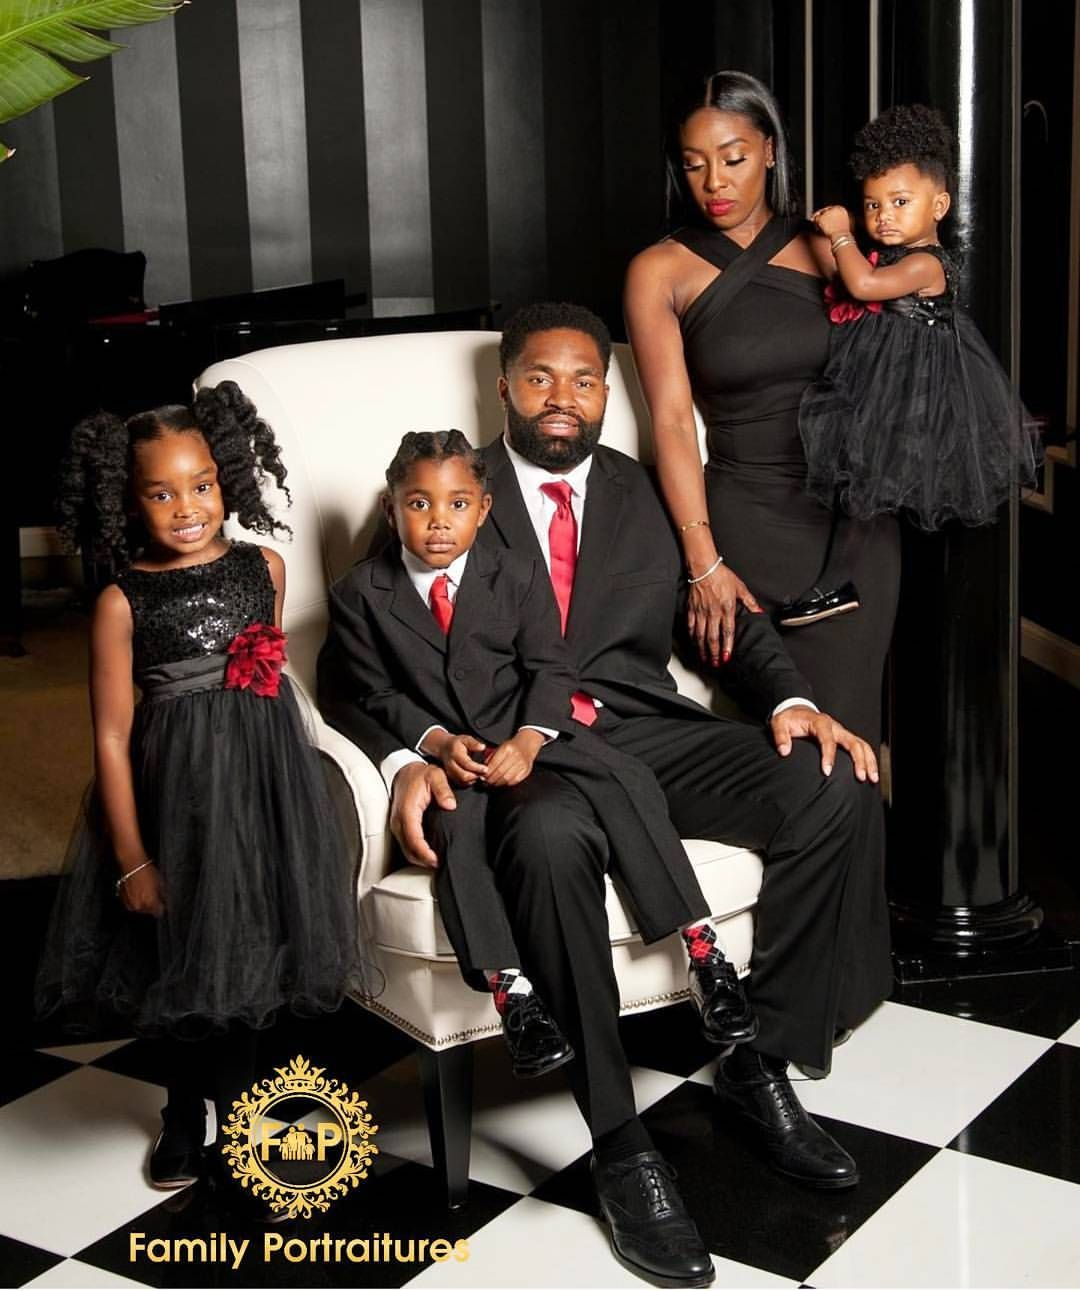 Family Picture Ideas For Wedding: BEAUTUFUL... Sunday's Best @mrsmayo51